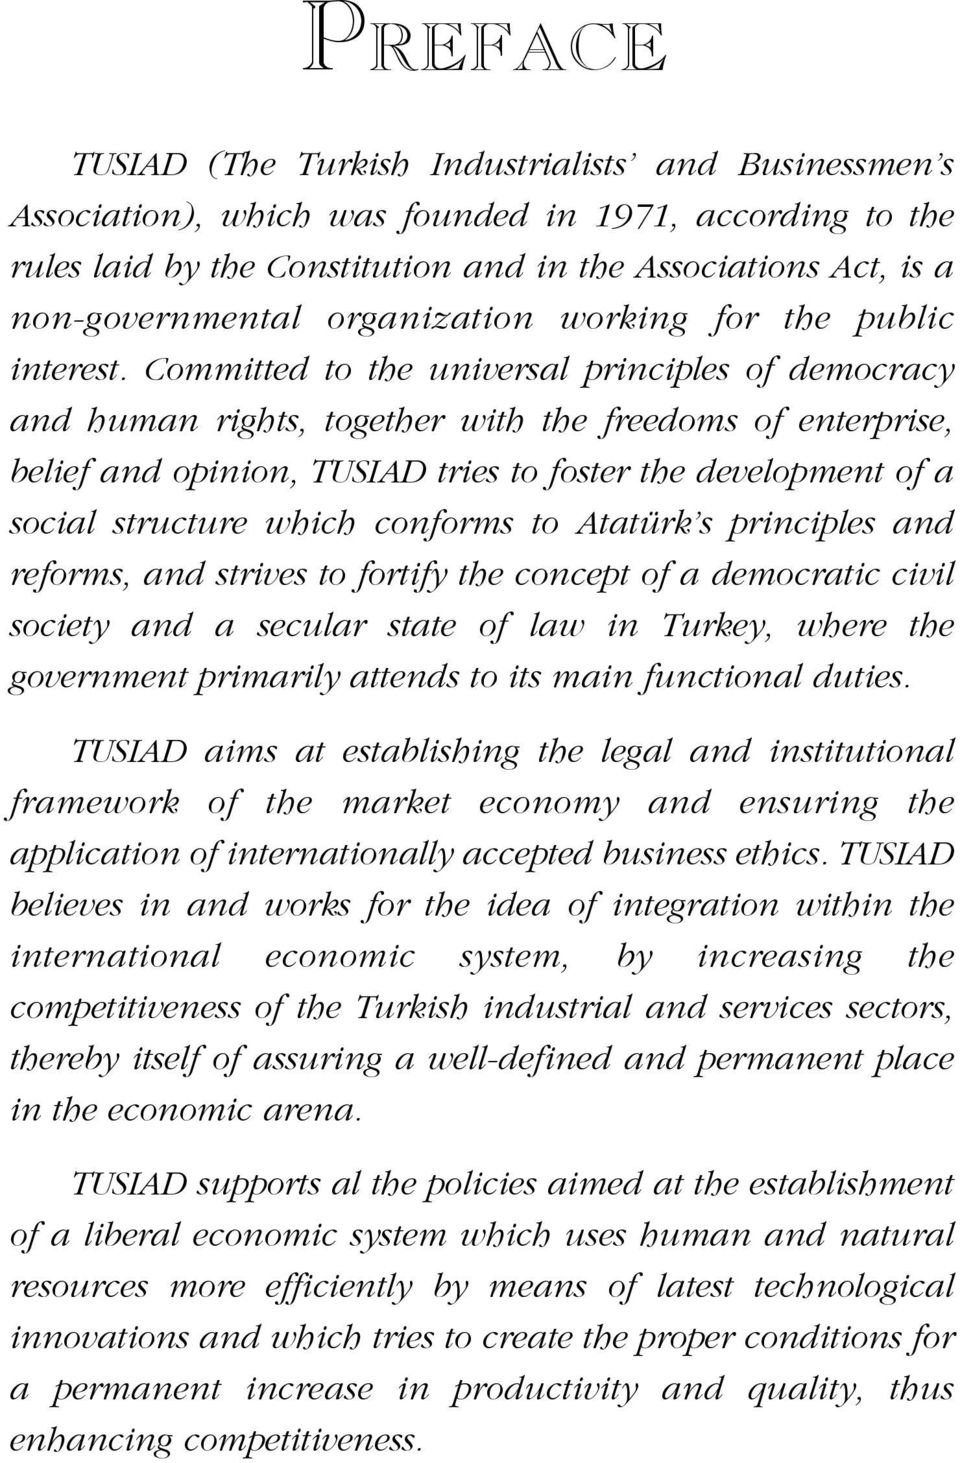 Committed to the universal principles of democracy and human rights, together with the freedoms of enterprise, belief and opinion, TUSIAD tries to foster the development of a social structure which